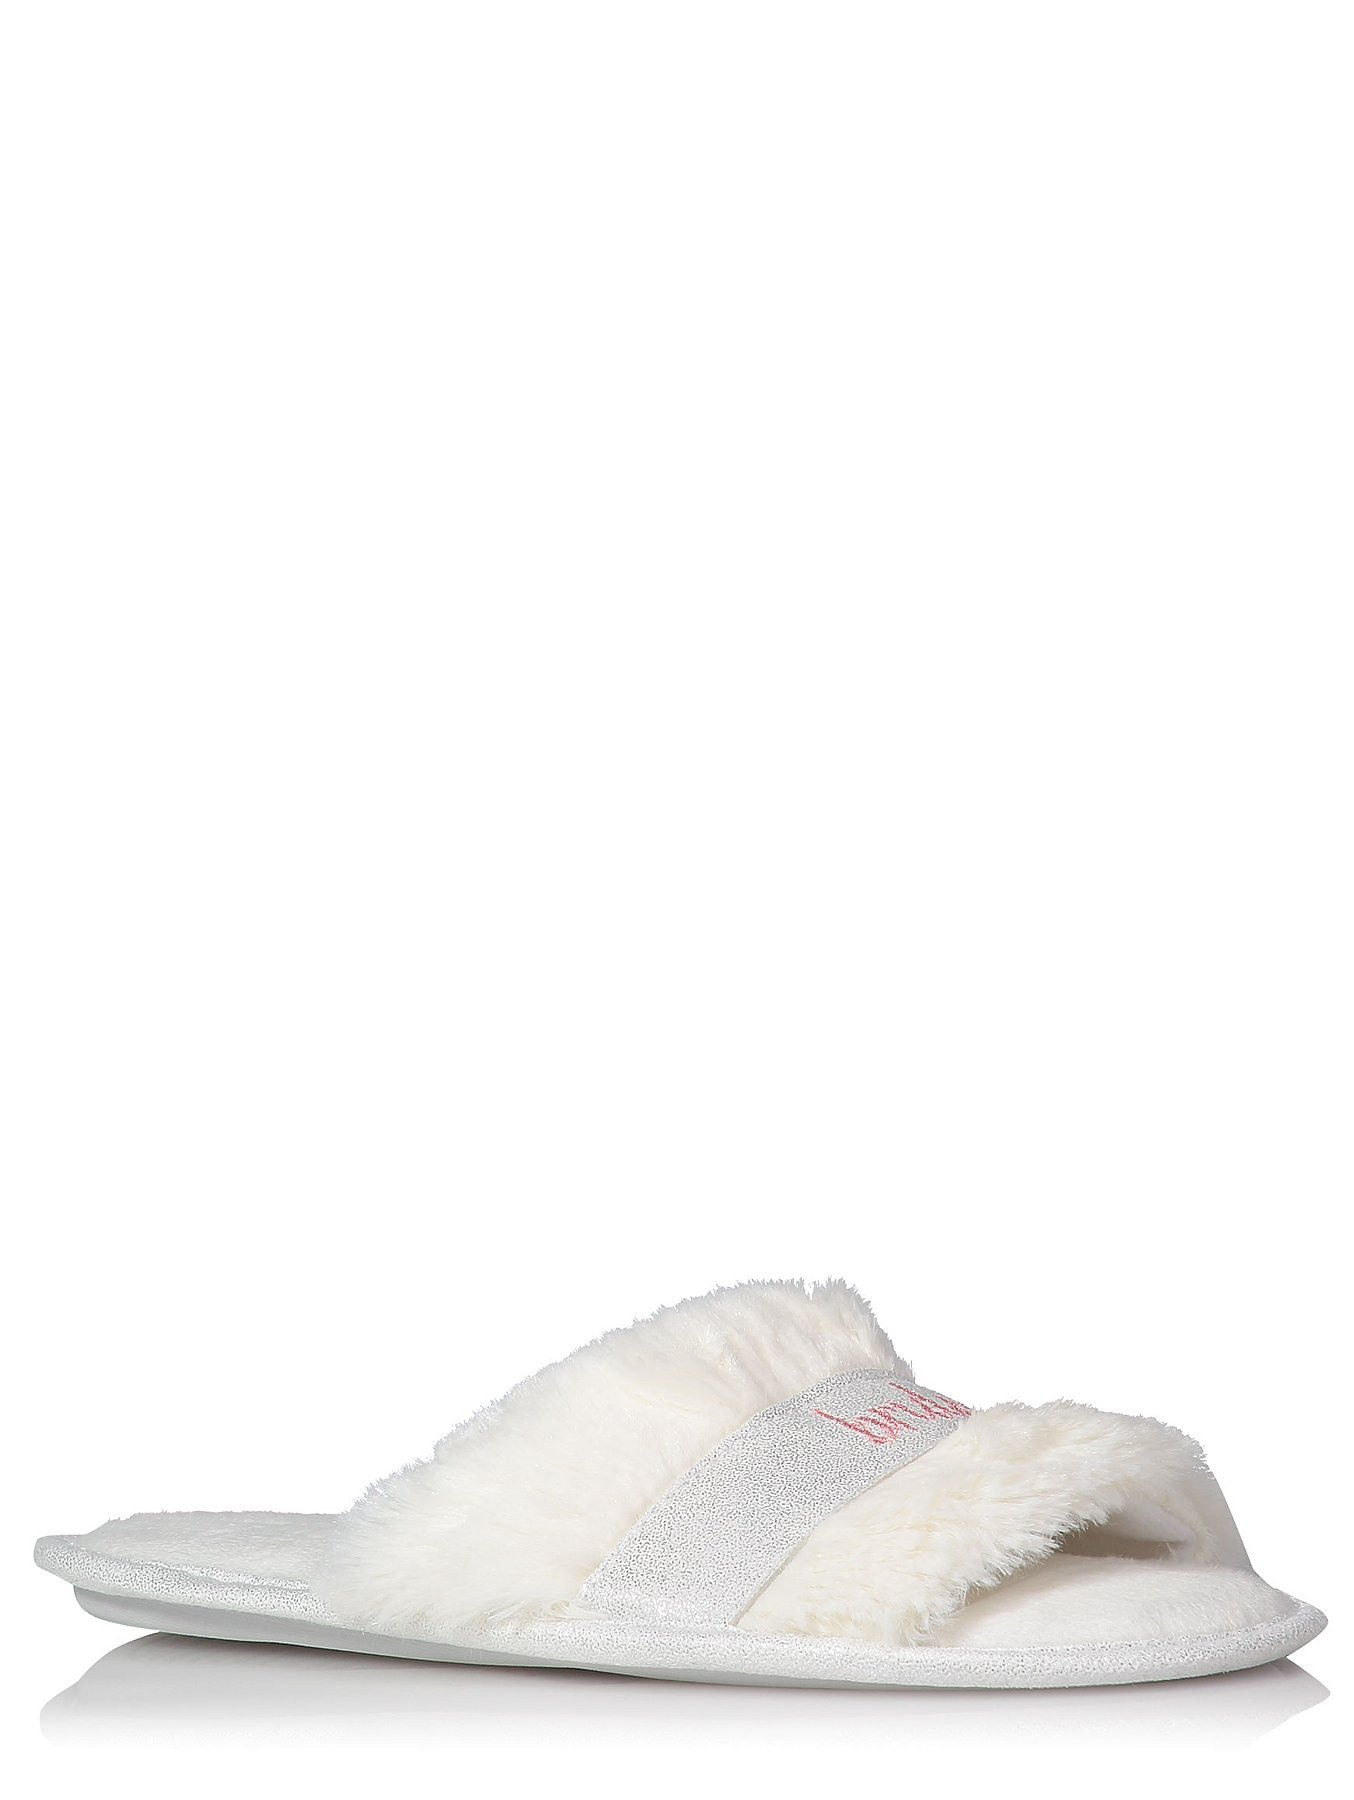 948af7678a6 White Bride To Be Slogan Open Toe Slippers